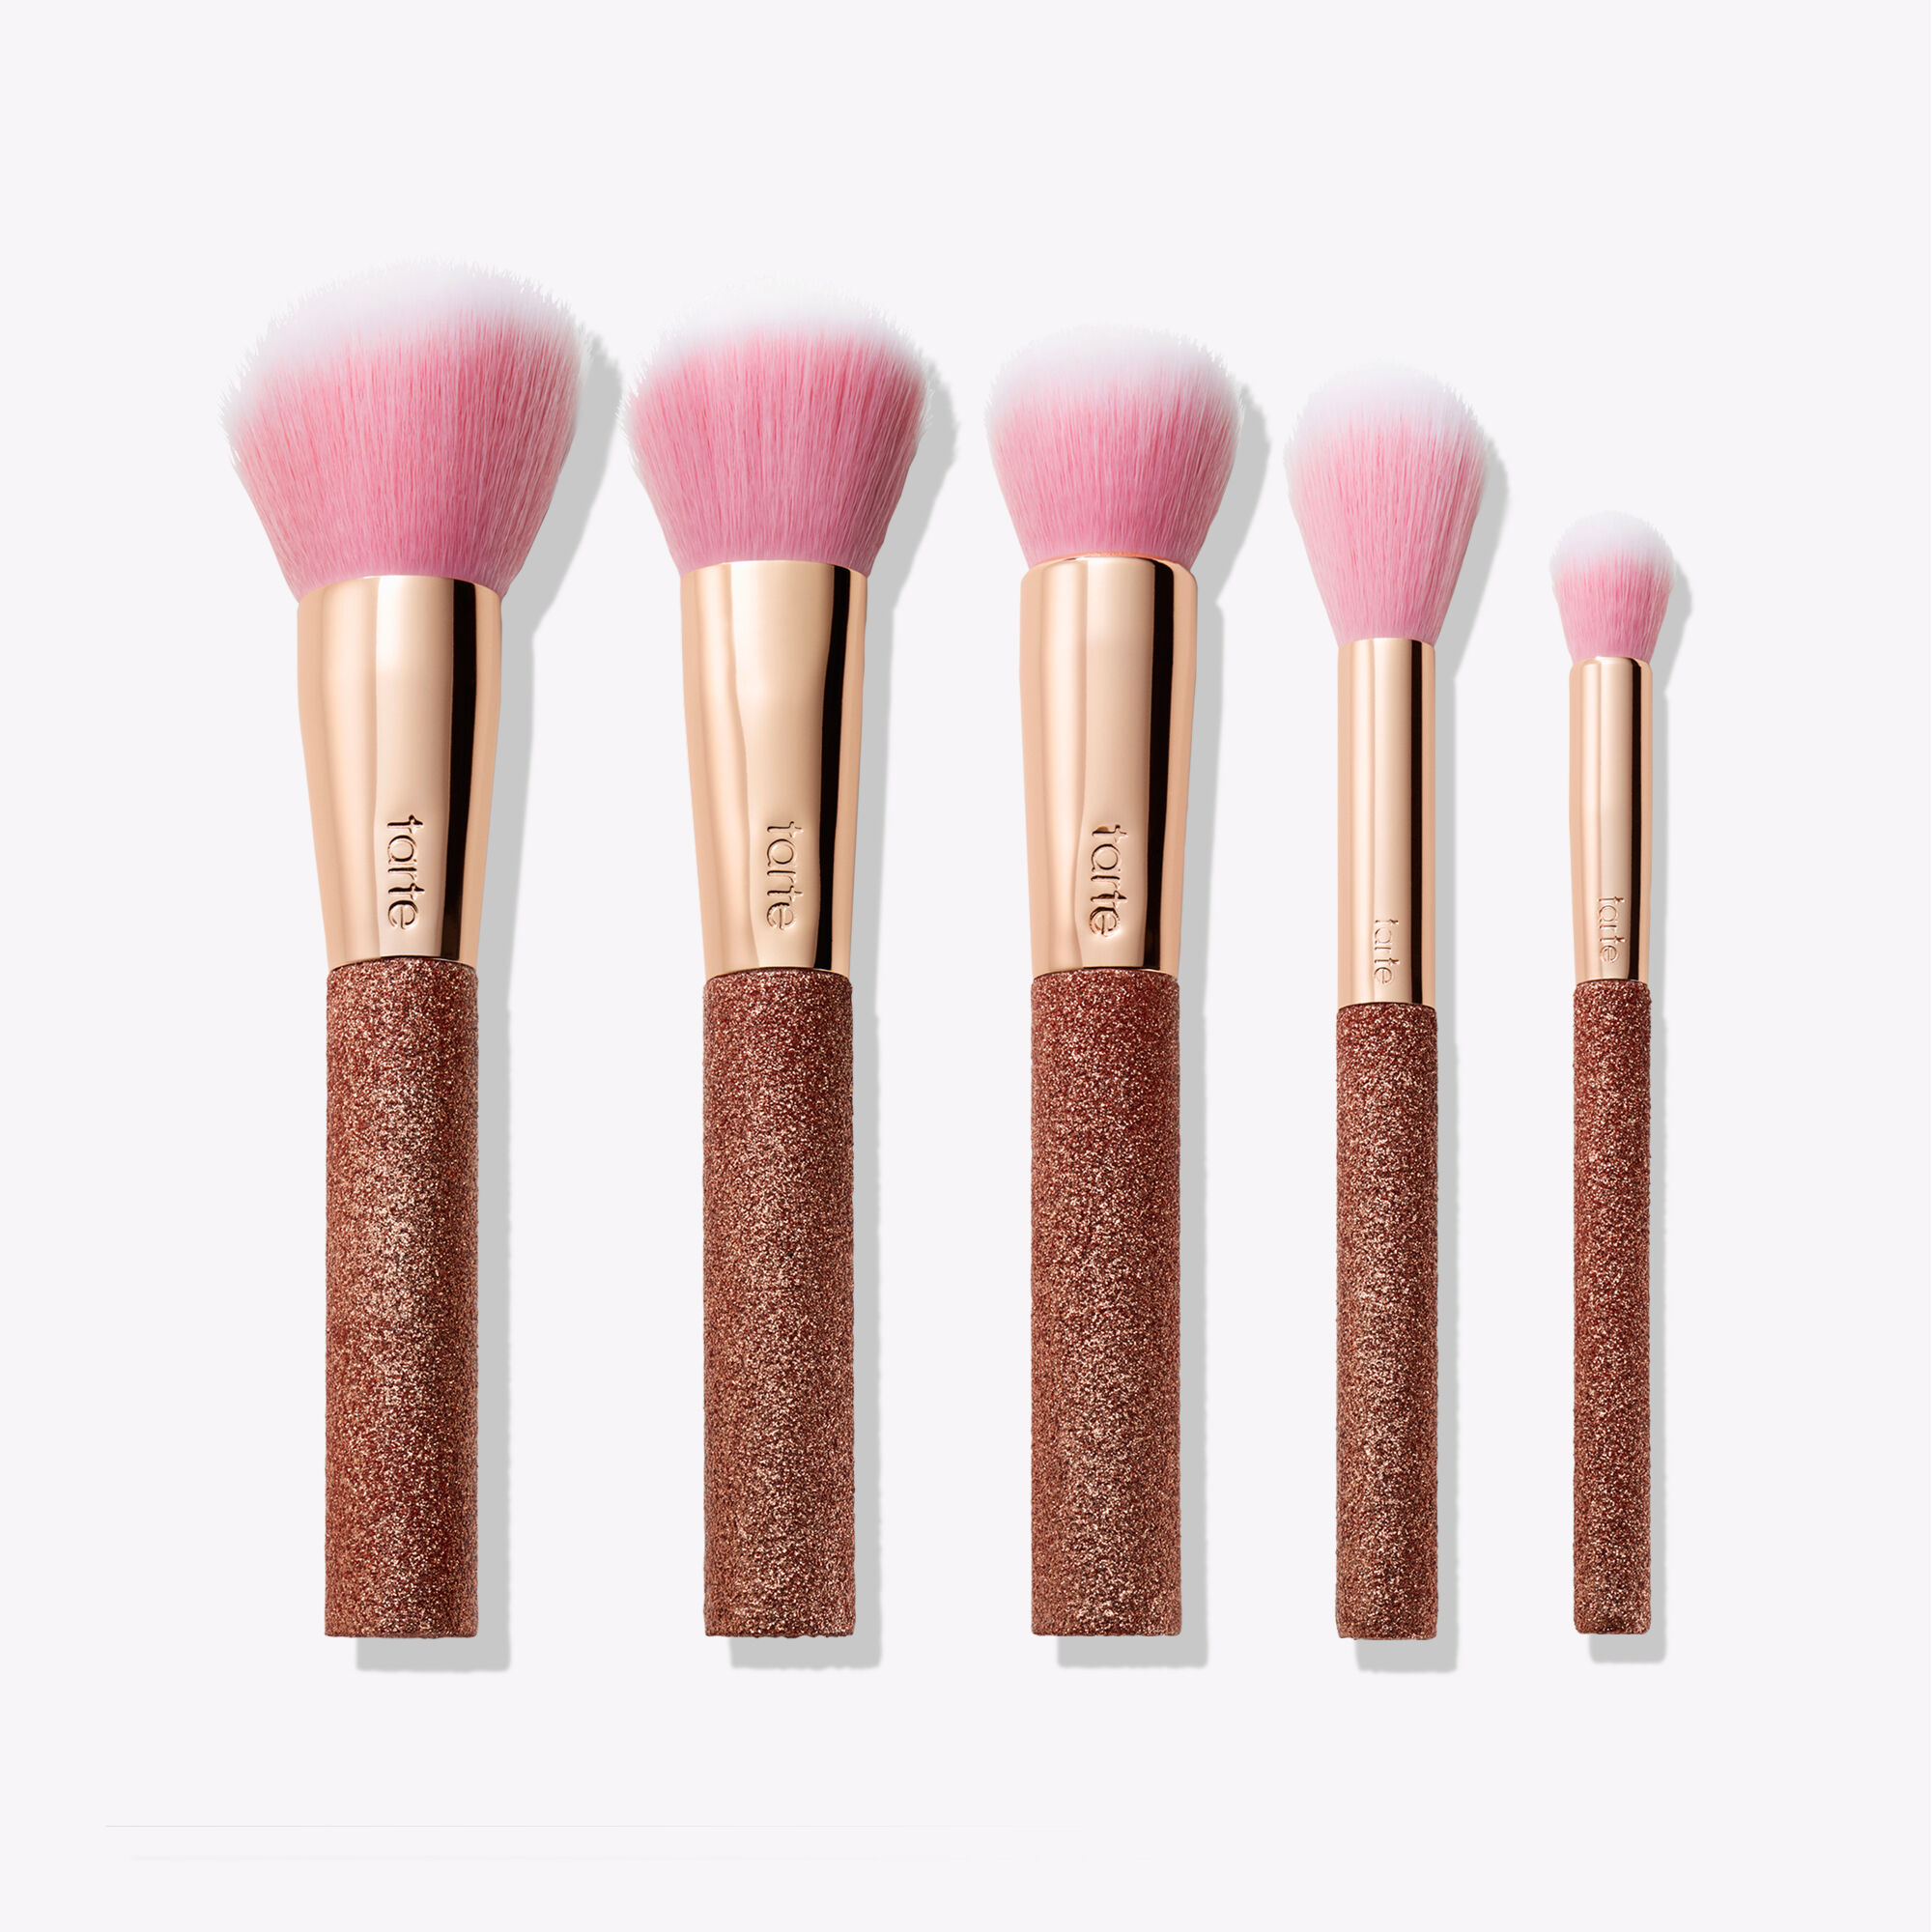 Morphe R9 Curved Contour Brush at Beauty Bay